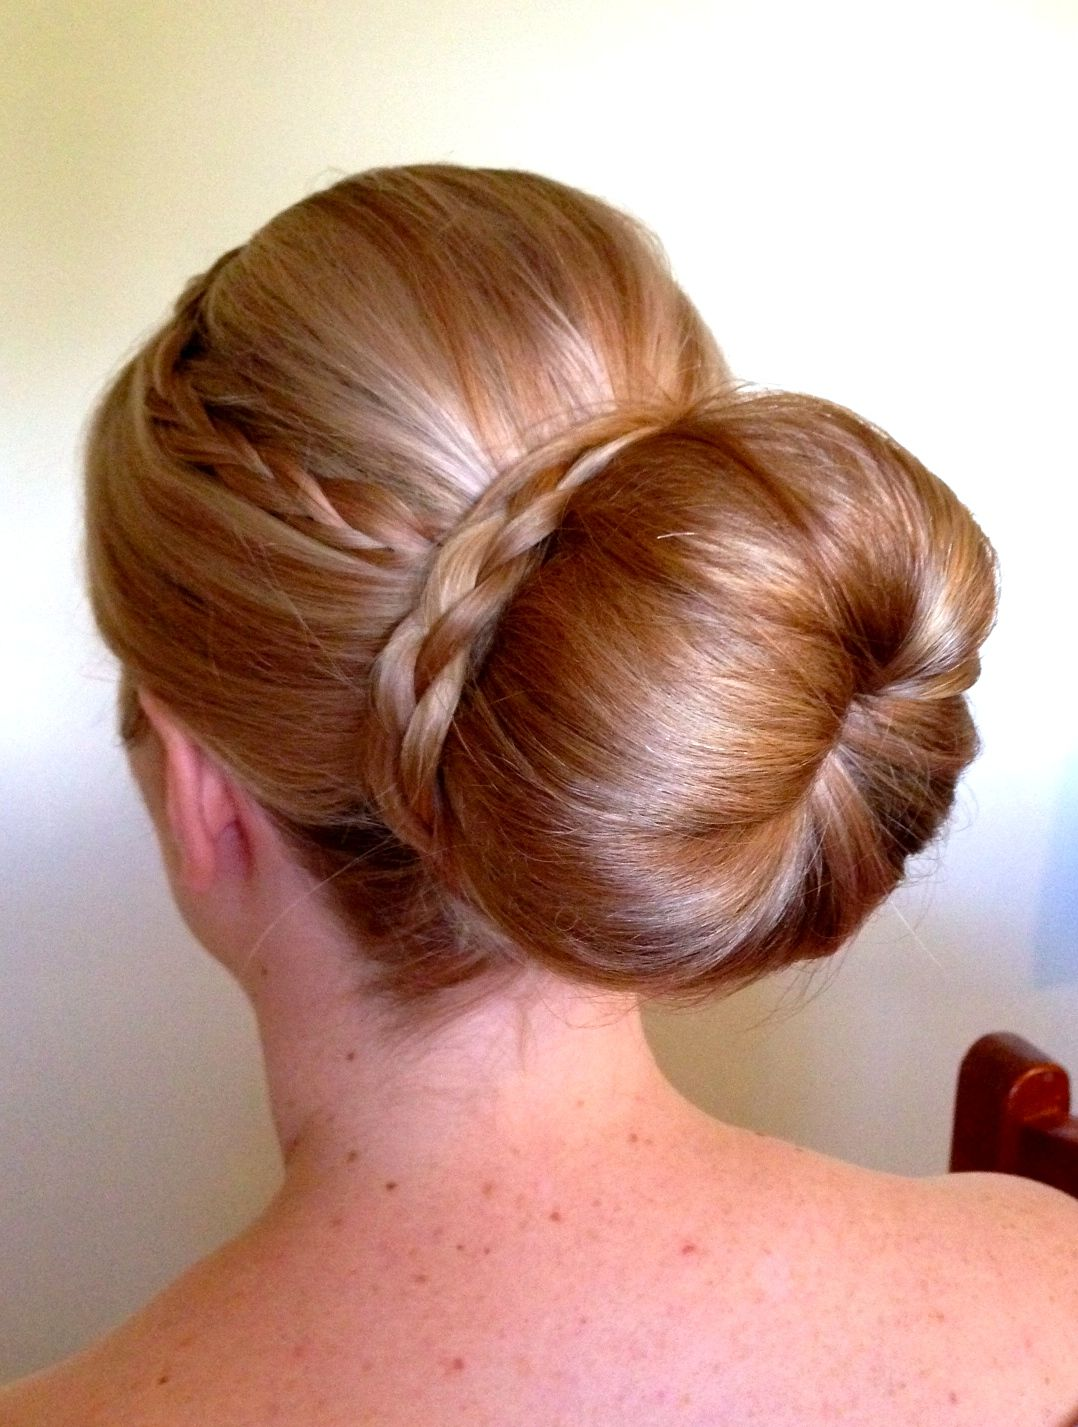 Find and save ideas about Big bun on Pinterest. | See more ideas about Easy hair buns, Bun hairstyles for long hair and Diy hair upstyles. children's headband, baby Turban, top knot, doughnut, big bun turban, fall. Baby, kids, children's headband, baby Turban, top knot, doughnut, big bun turban, fall. by KayGeeMedina on Etsy https://www.